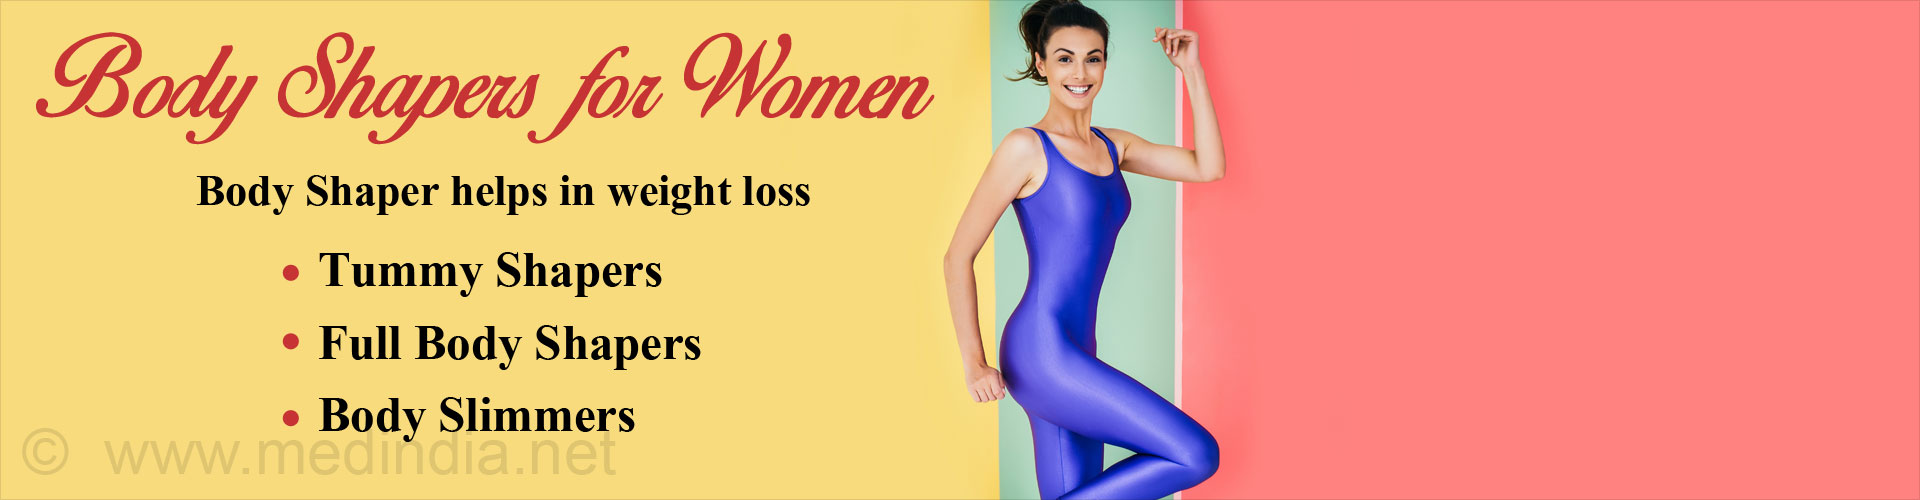 99b5e611daa Body Shapers - Pros and Cons